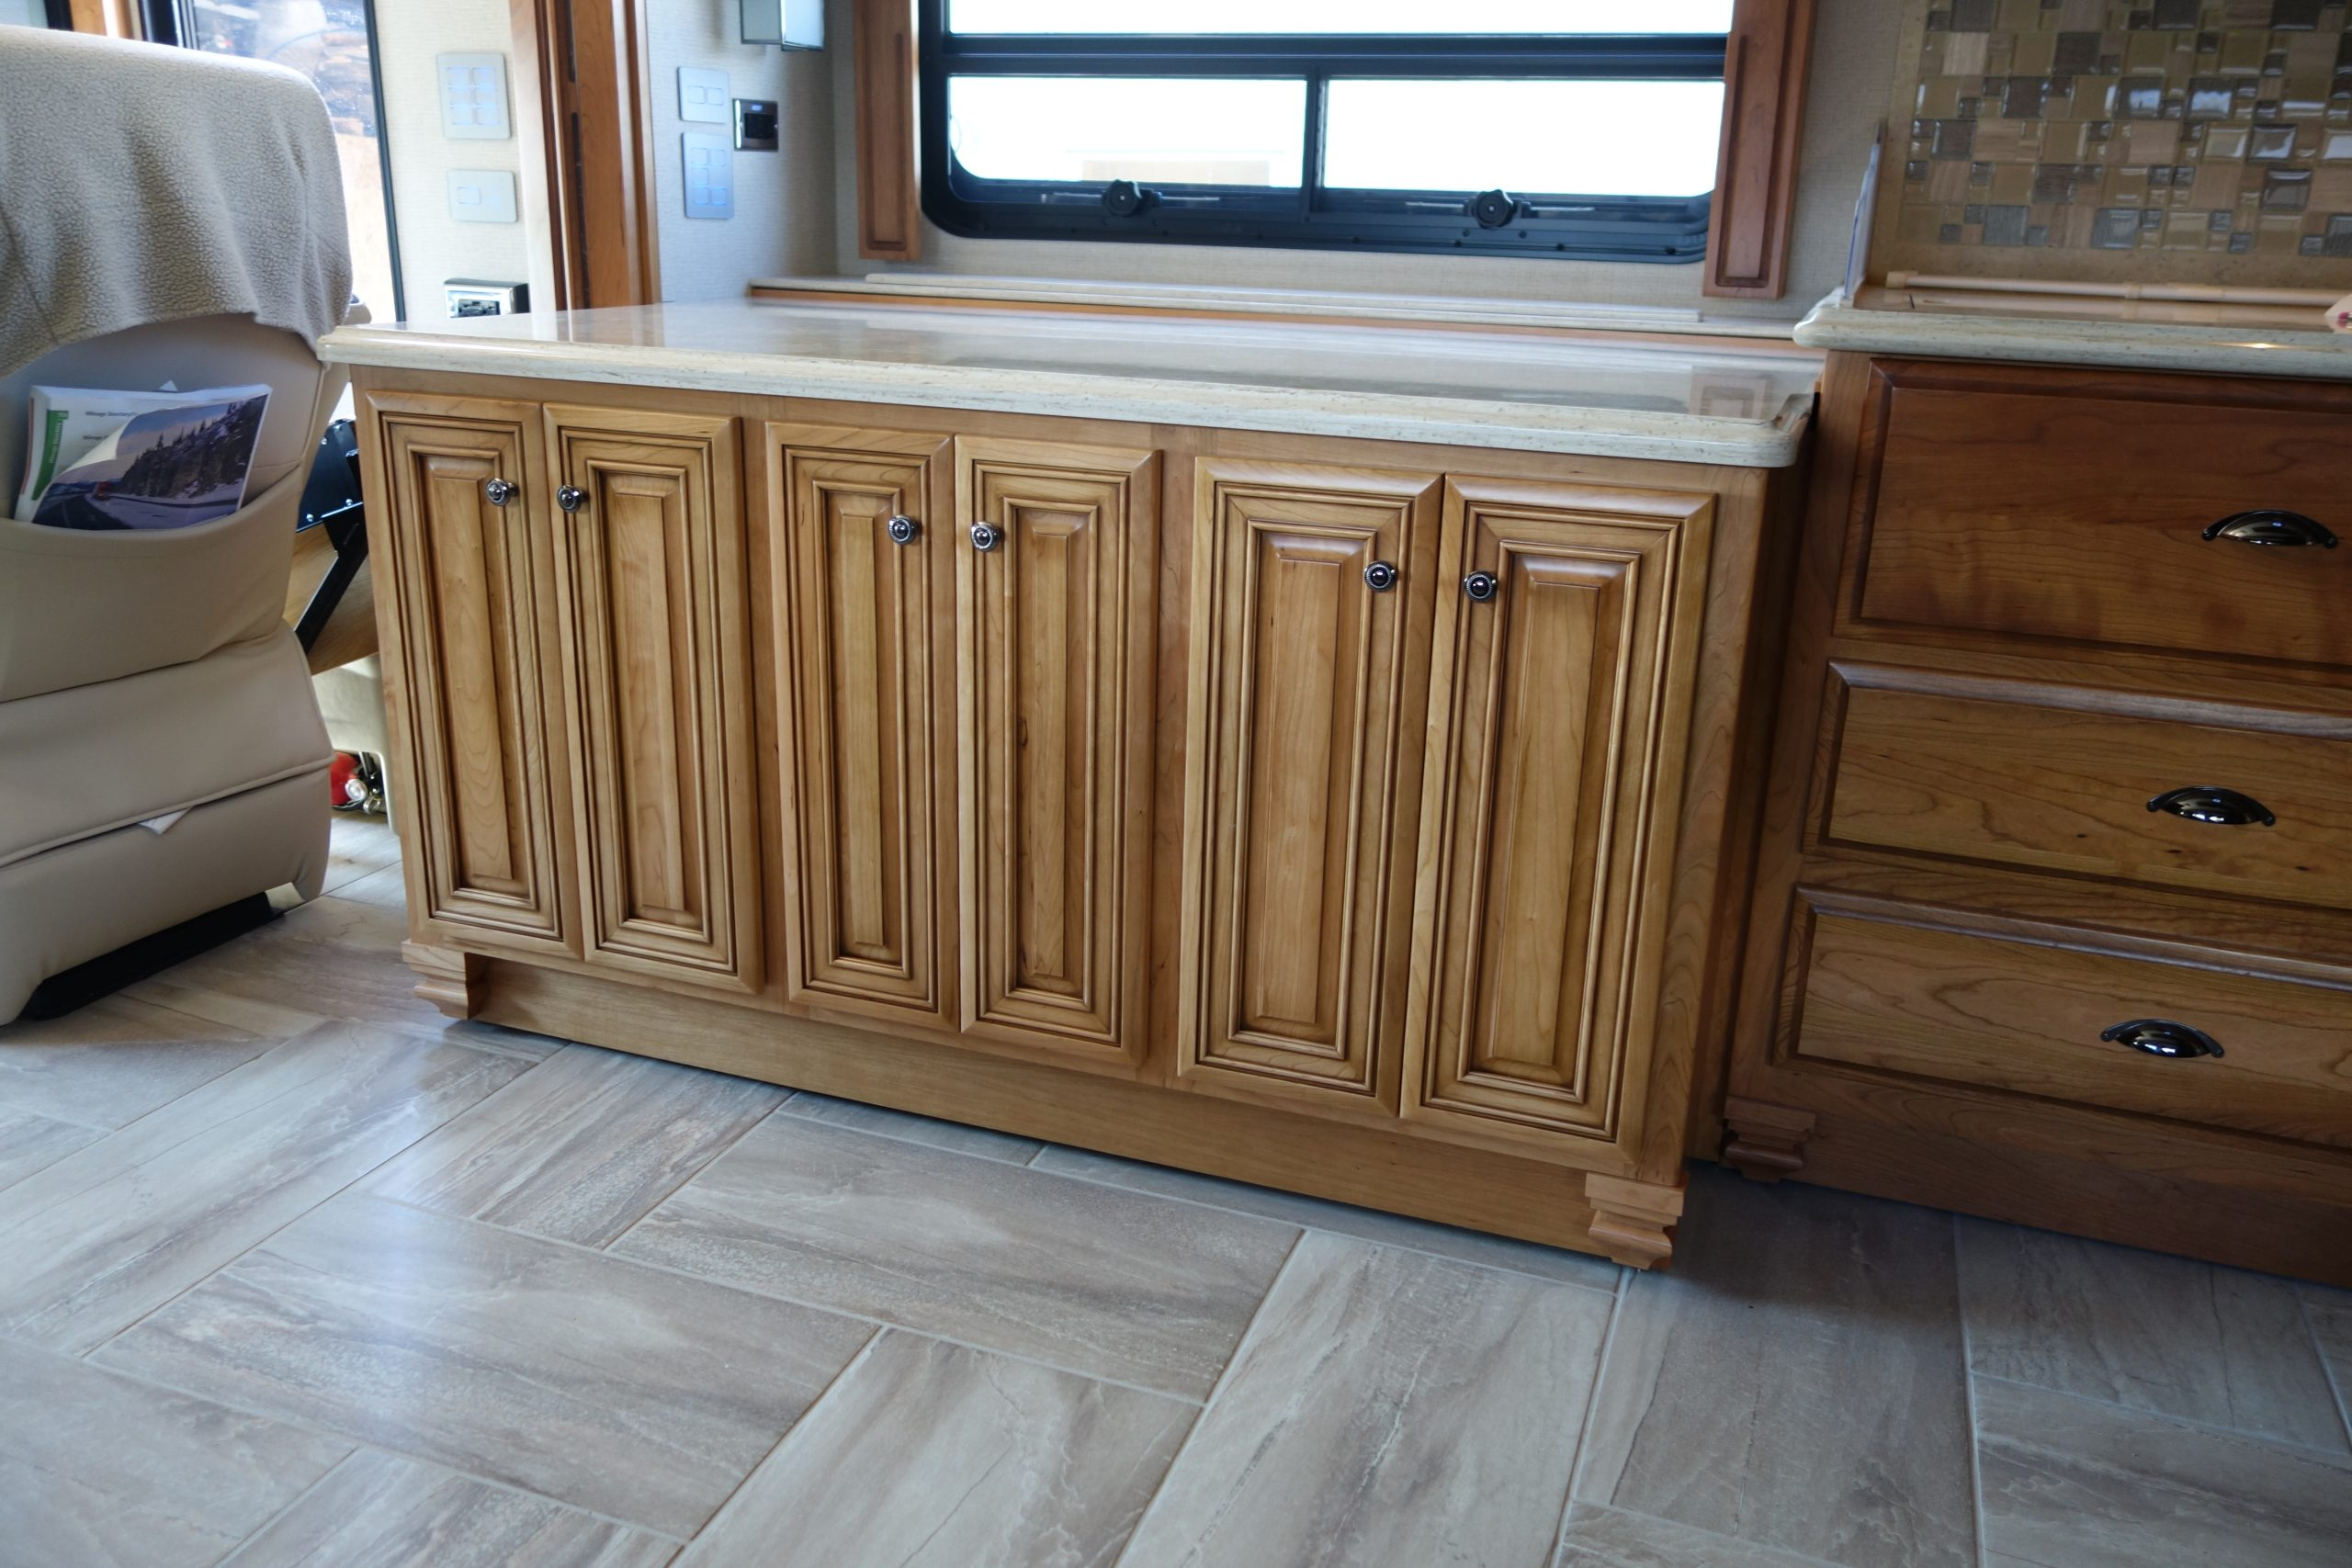 Custom kitchen countertop and cabinet set